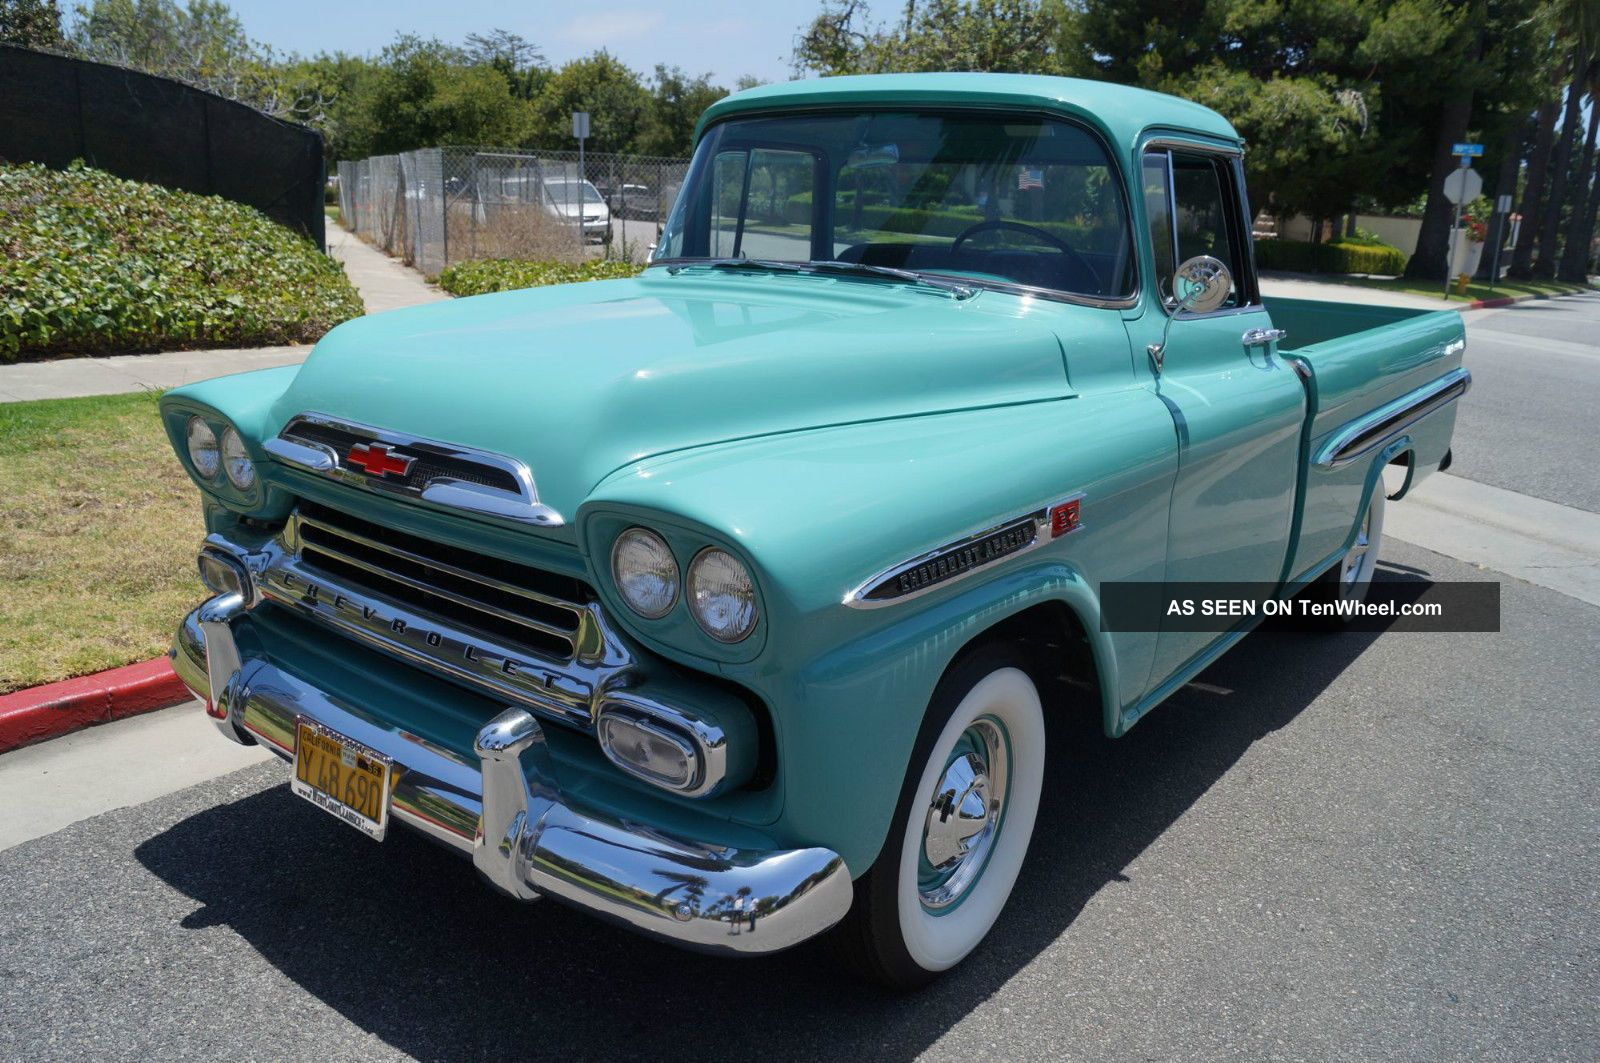 1959 California Truck With Custom Cab - Long Time Owner History Other Pickups photo